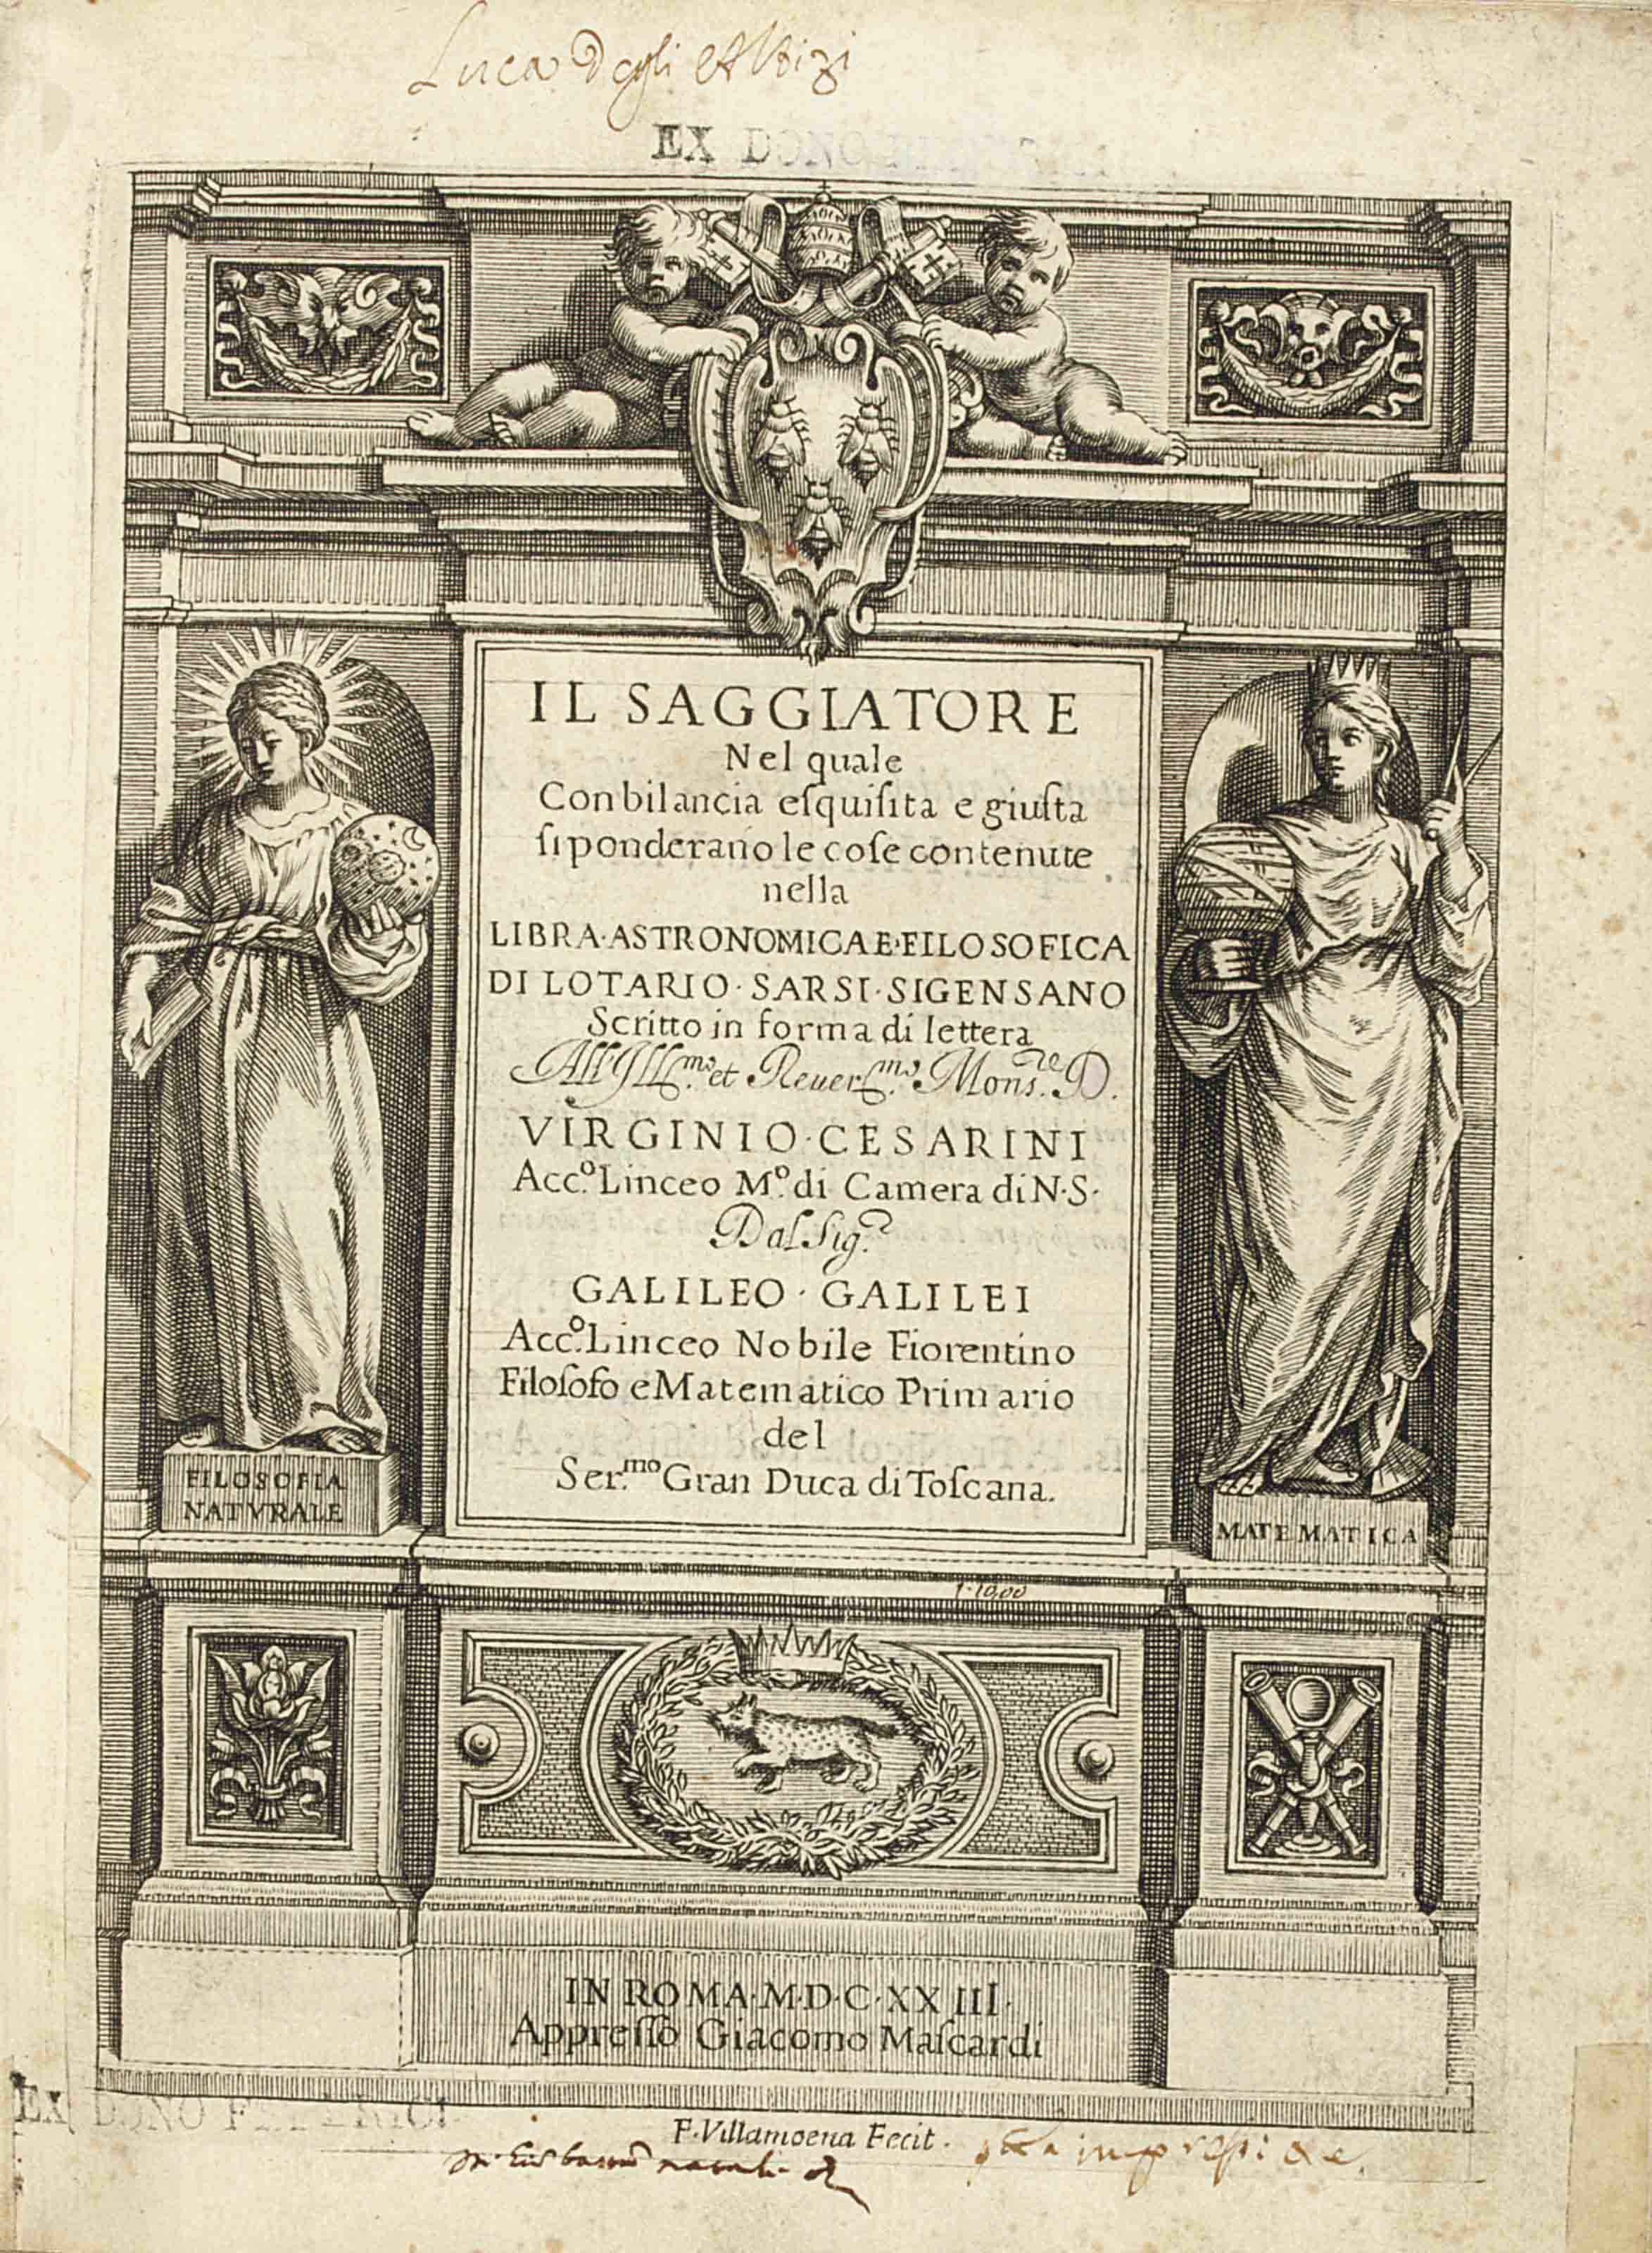 GALILEI, Galileo (1564-1642). Il saggiatore nel quale con bilancia esquisita e giusta si ponderano le cose contenute nella libra astronomica e filosofica di Lotario Sarsi Sigensano. Rome: Giacomo Mascardi, 1623. 4° (215 x 158mm). Engraved title-page, portrait of Galileo, woodcut initials and headpiece, engraved diagrams in text. Without 4 leaves of preliminary verses present in some issues. (Minor marginal repairs in first four leaves, occasional spotting and browning, repairs to some leaves.) Early vellum, title to spine and bottom edges in early manuscript (minor worming to upper panel, spine lightly soiled). Provenance: Luca degli Albizzi (ownership inscription to title-page, copious notes and corrections in brown ink throughout).